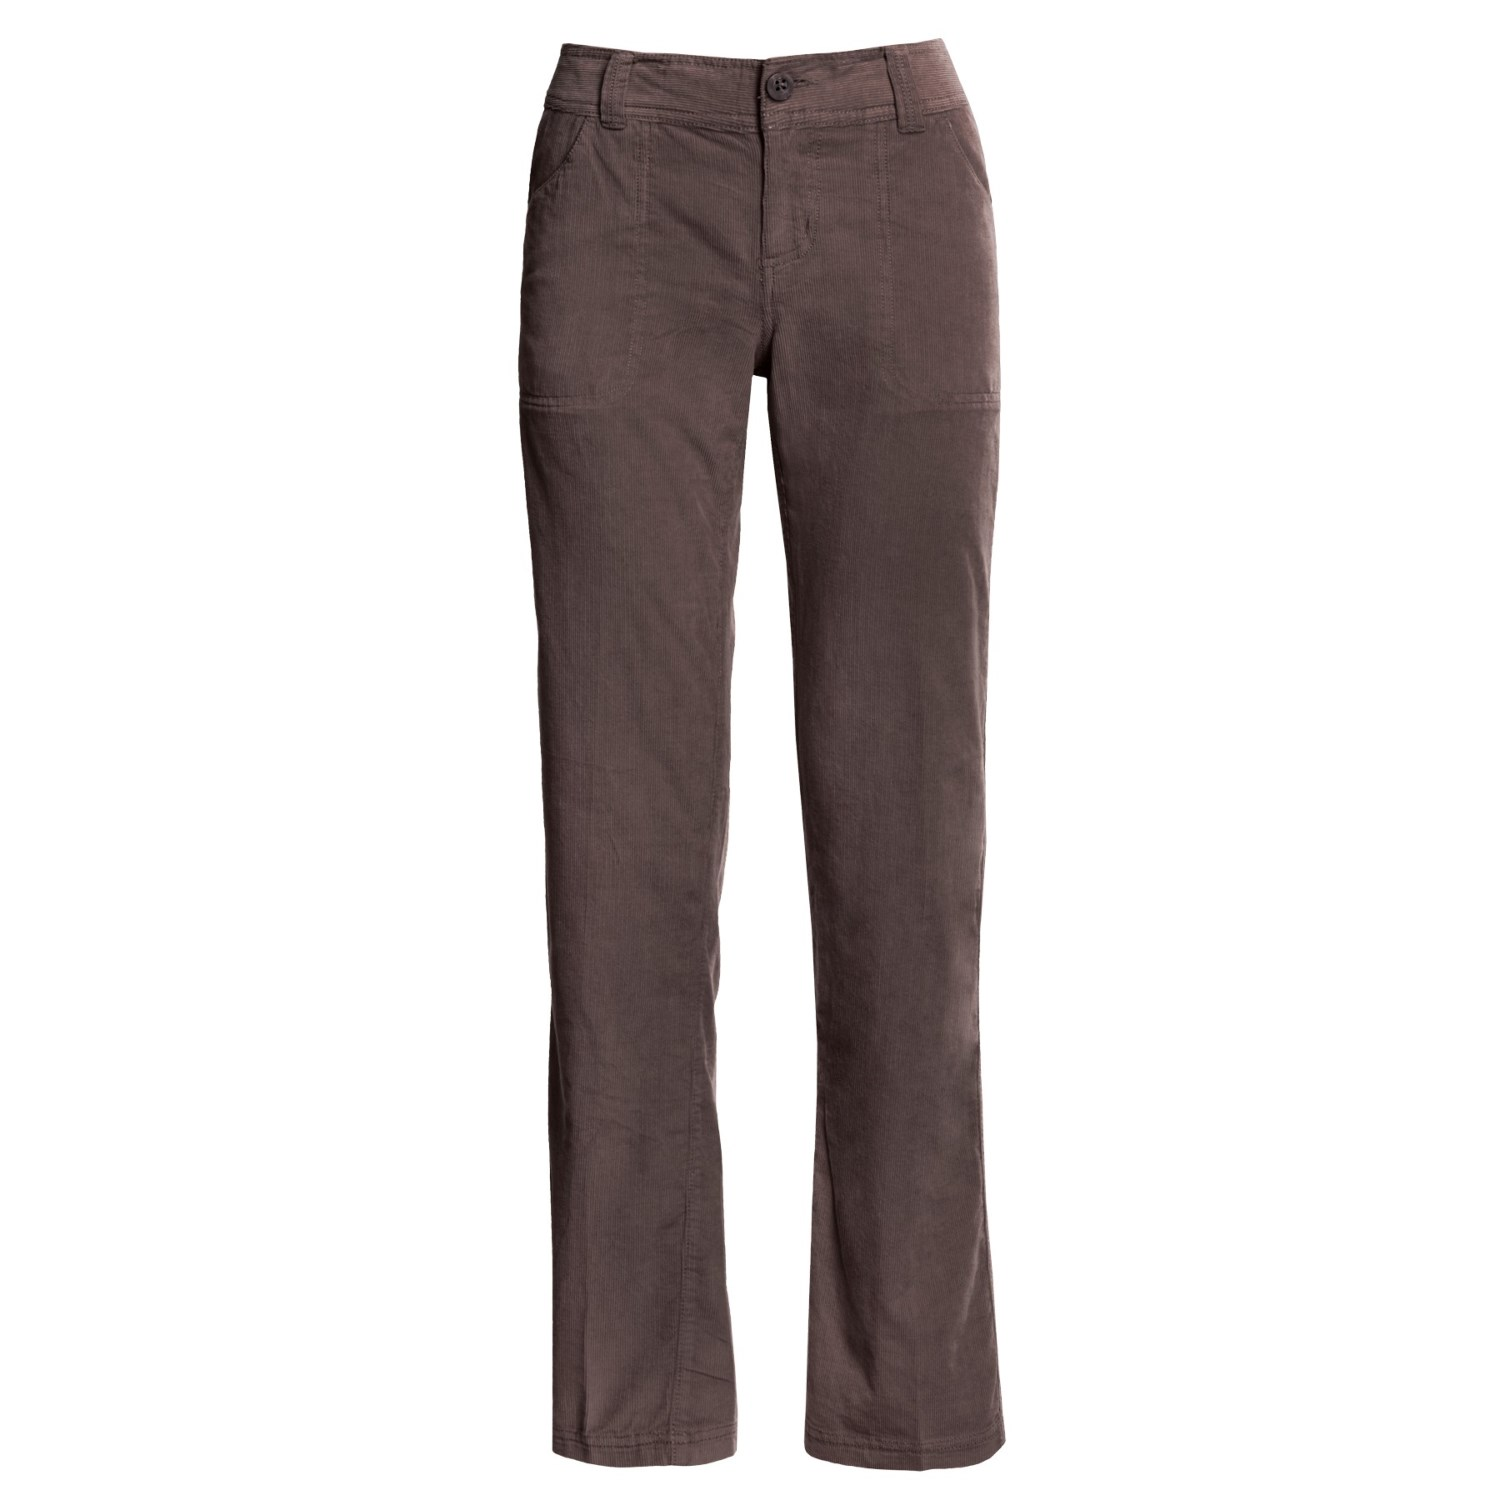 Creative JAG Carla Corduroy Pants  Low Rise Bootcut For Women  Save 46